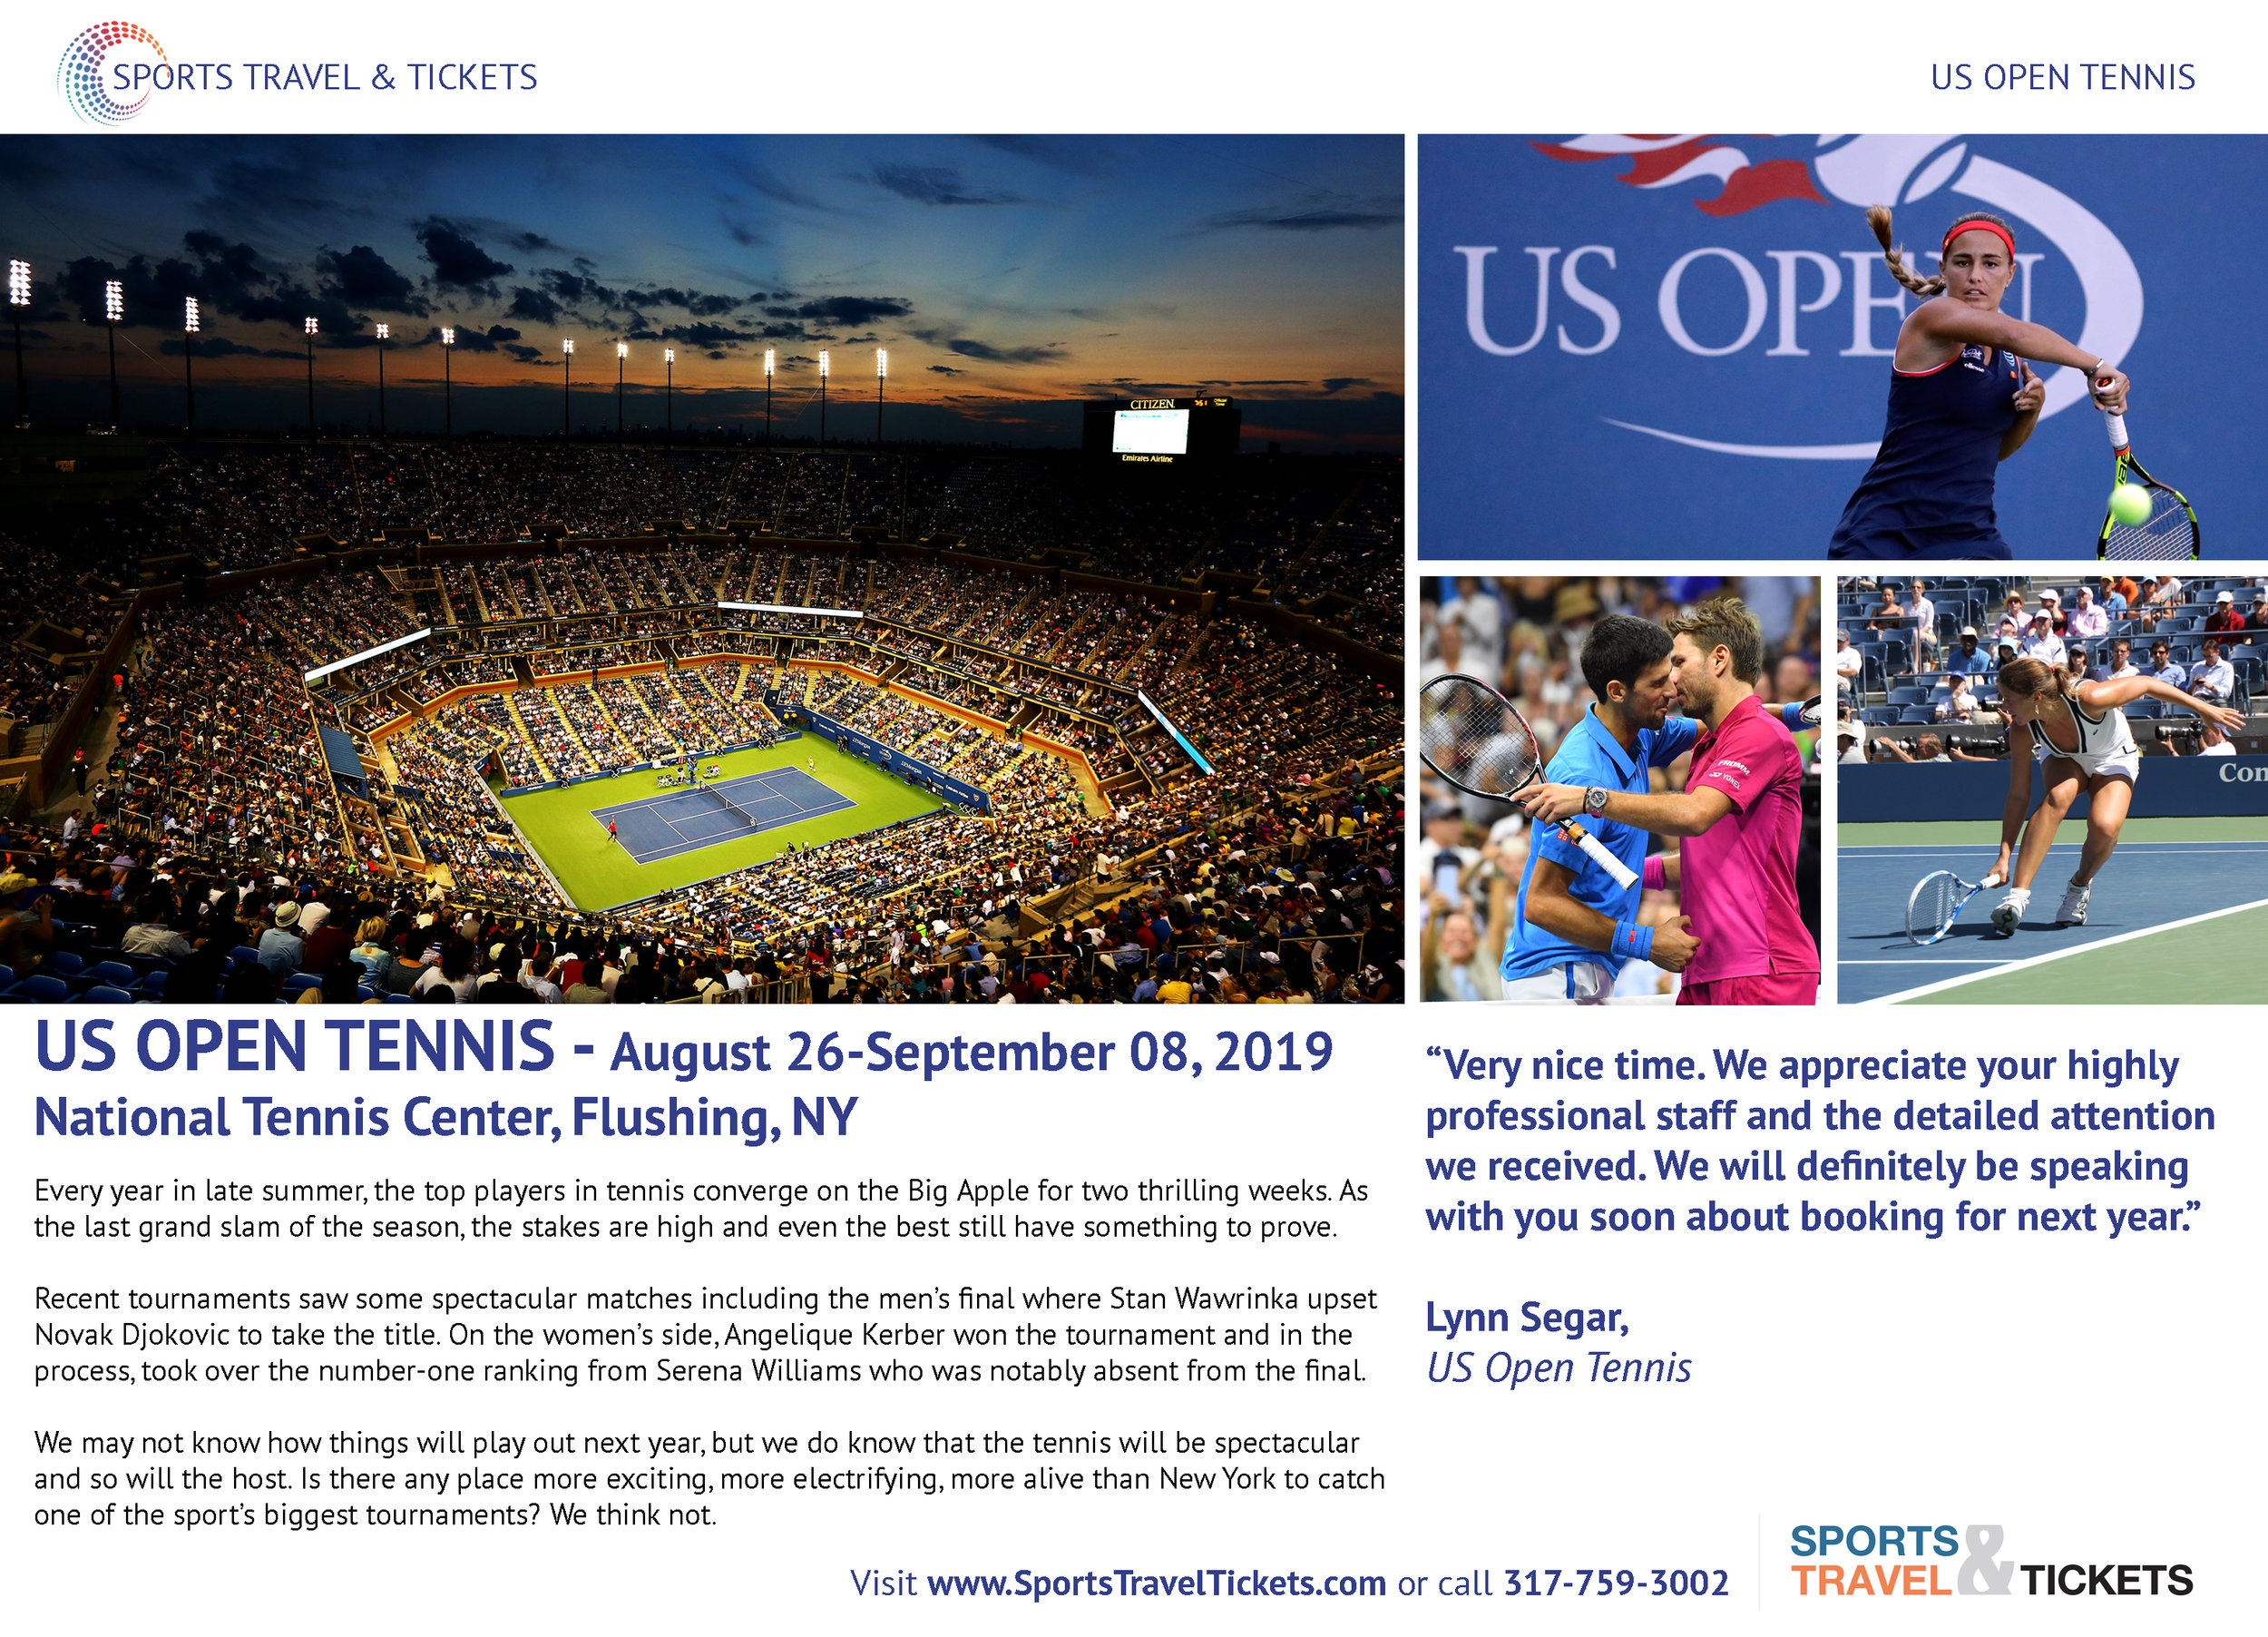 Sports Travel & Tickets Brochure US Open Tennis travel ticket packages hospitality.jpg